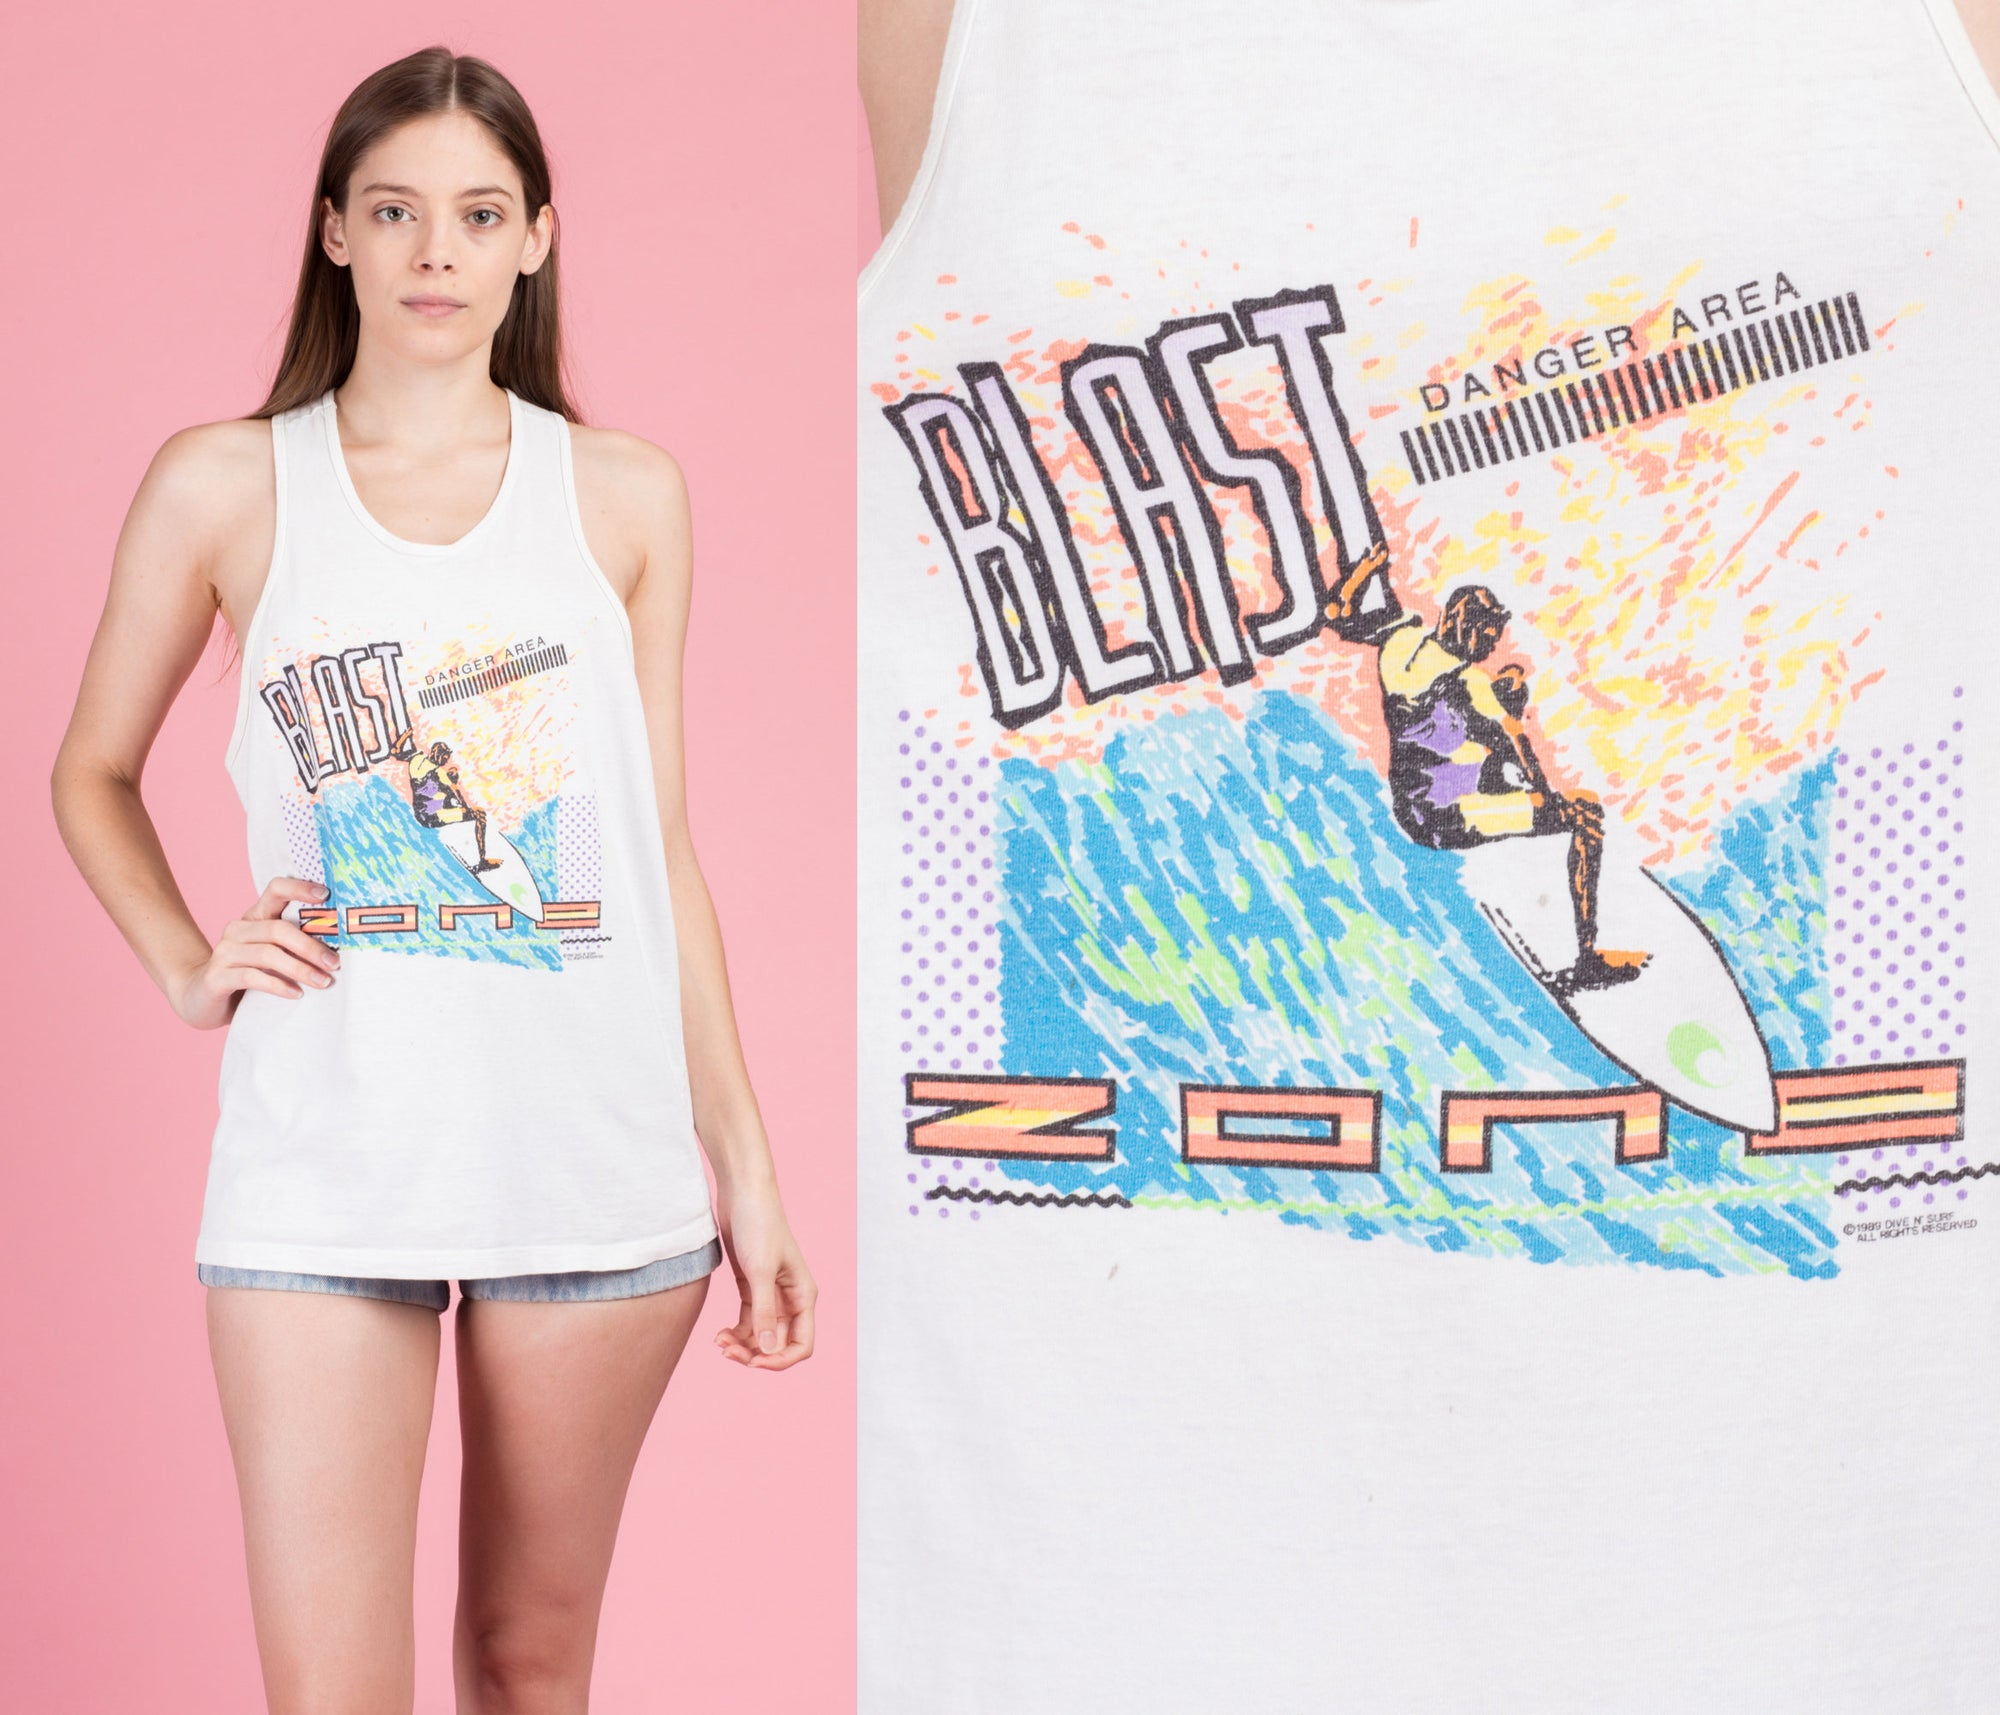 80s Blast Zone Surfer Tank Top - Medium